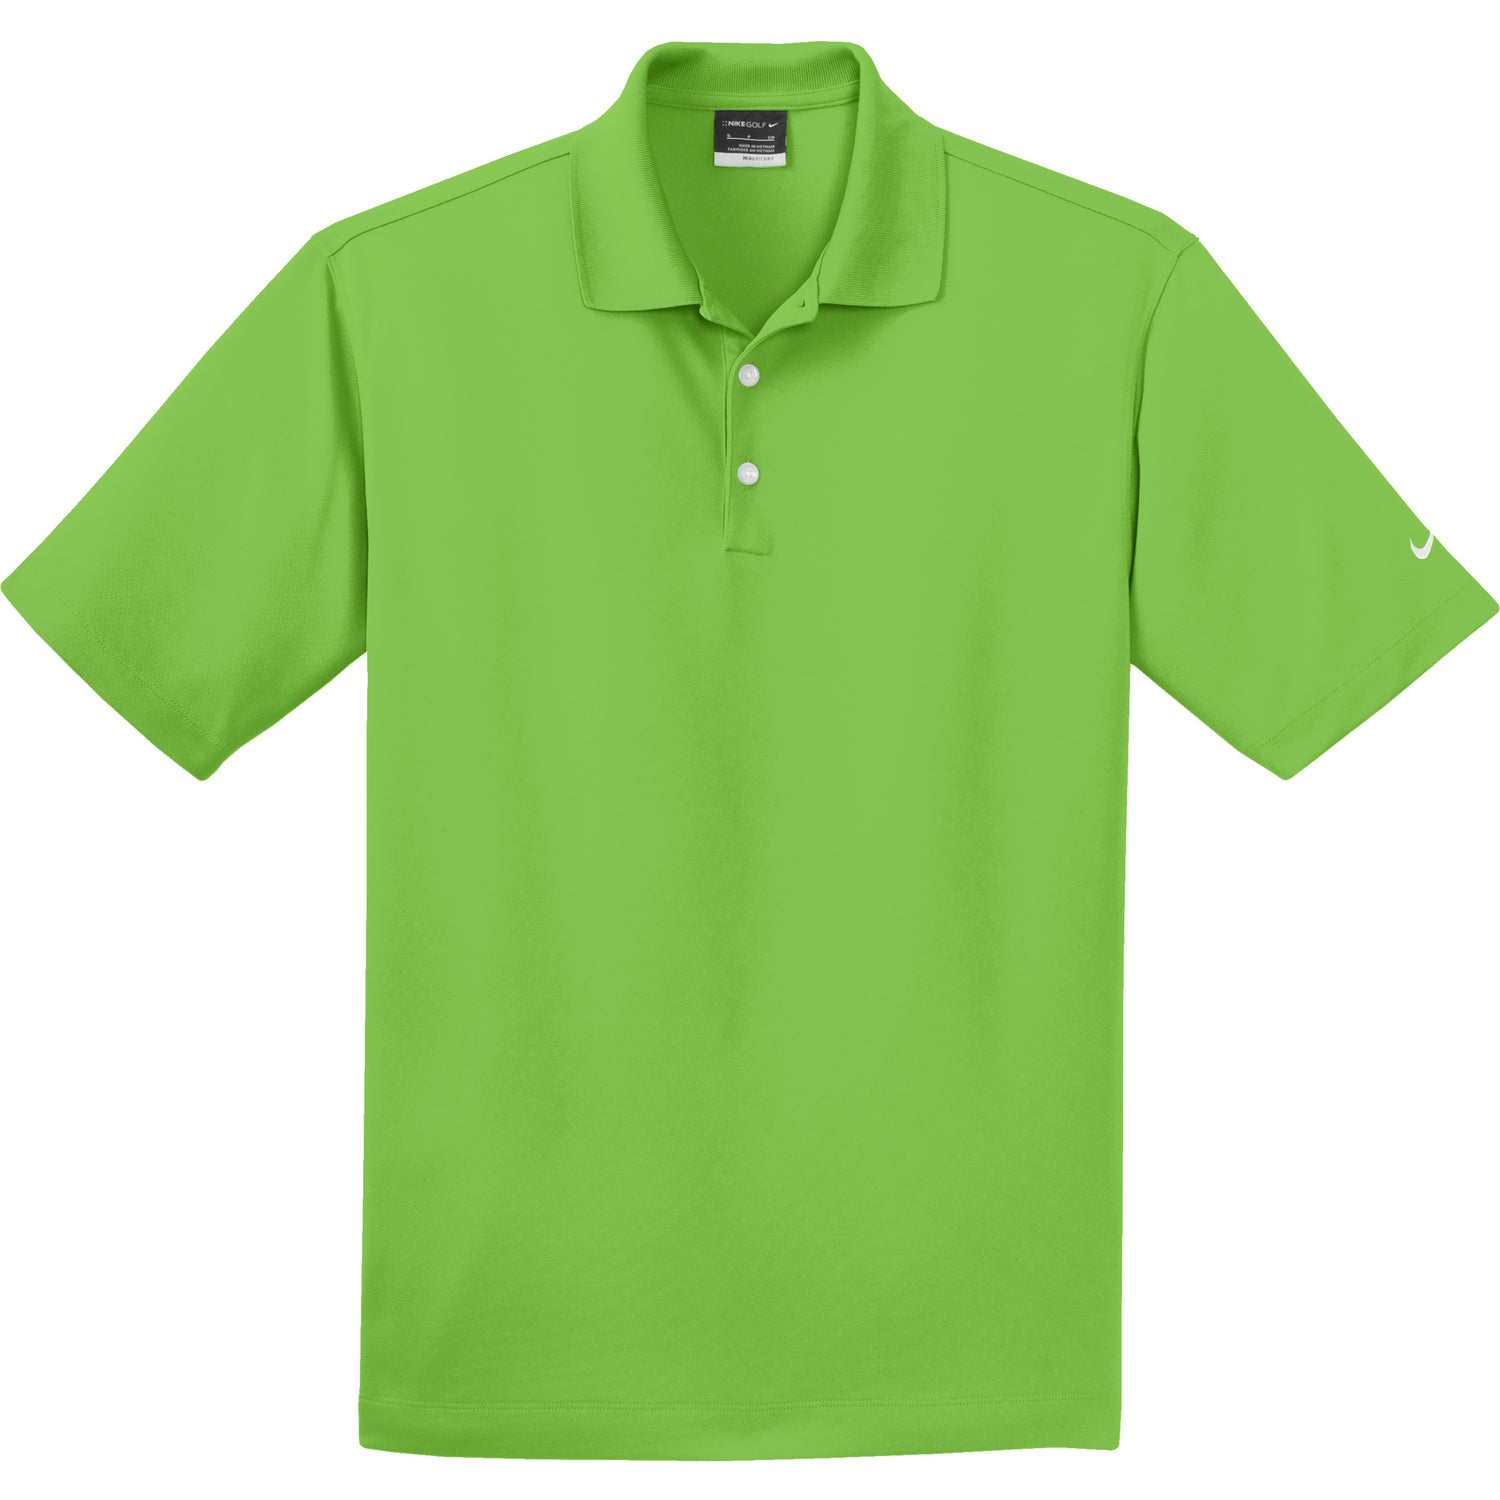 Nike golf dri fit micro pique polo shirt embroidered for Quality polo shirts with company logo